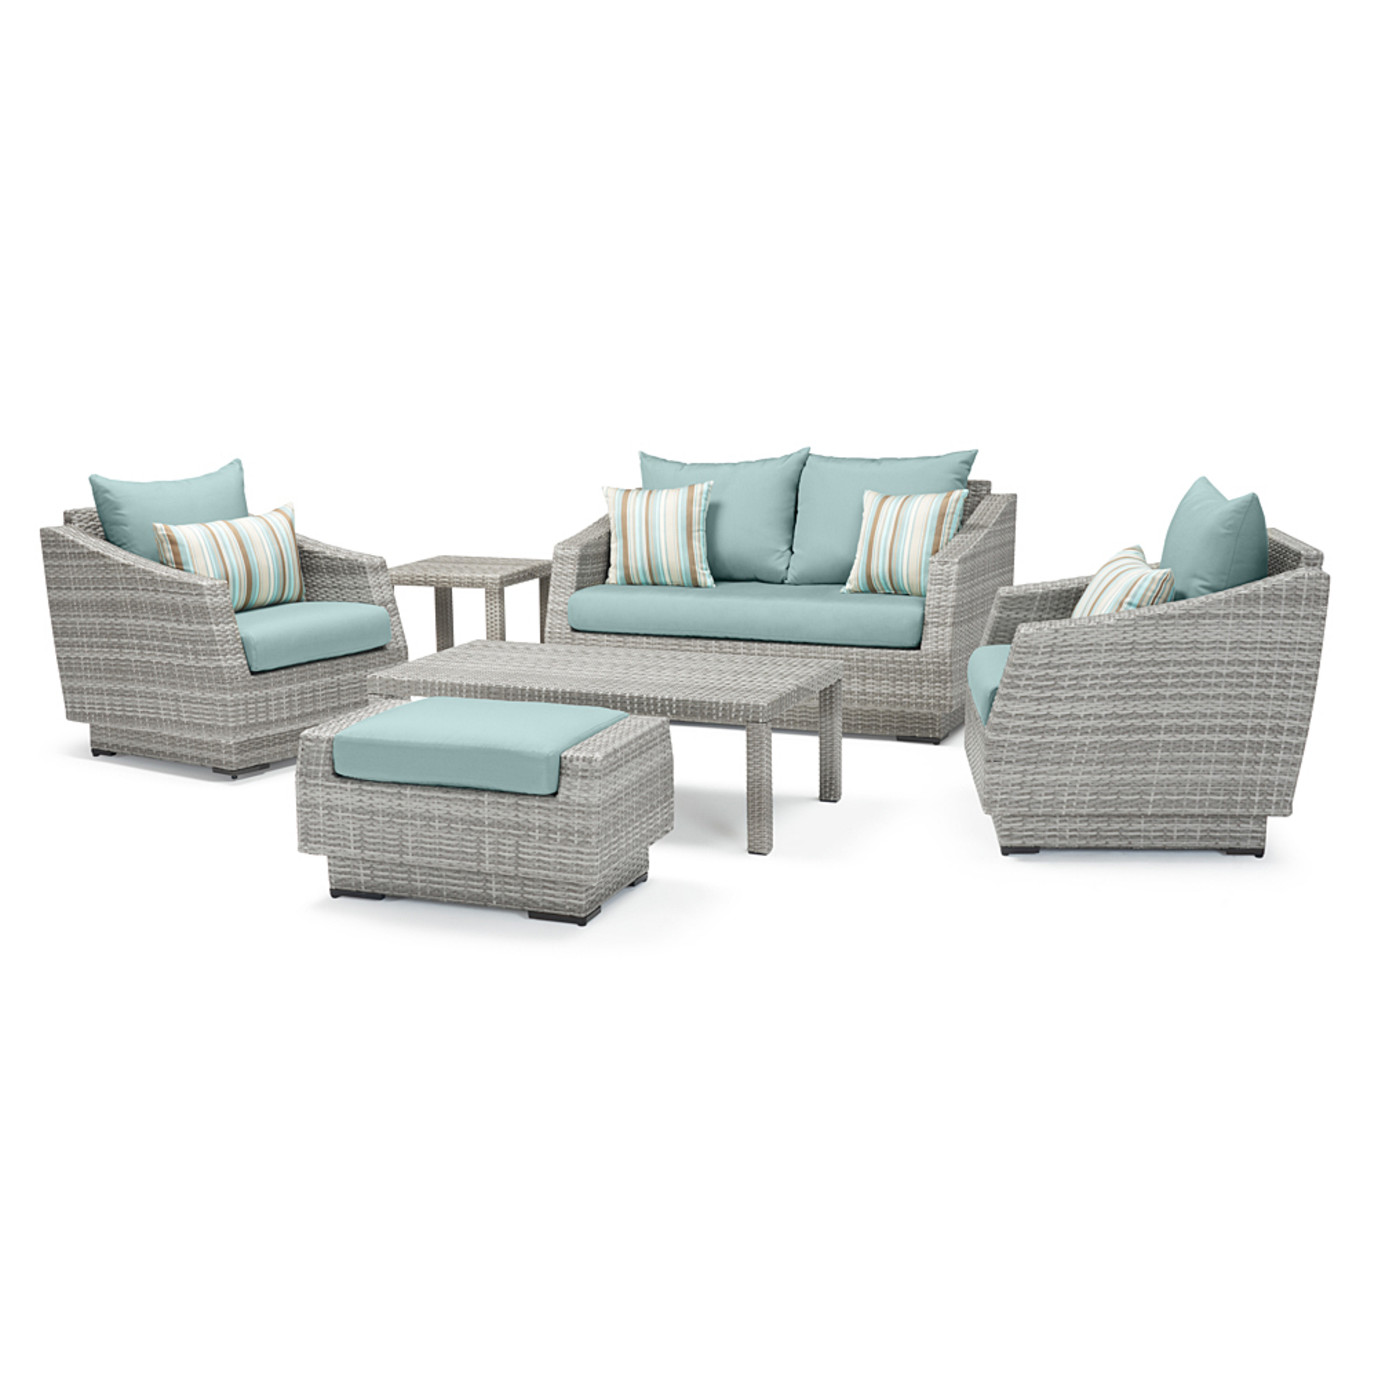 Cannes™ 6 Piece Love and Club Seating Set - Bliss Blue